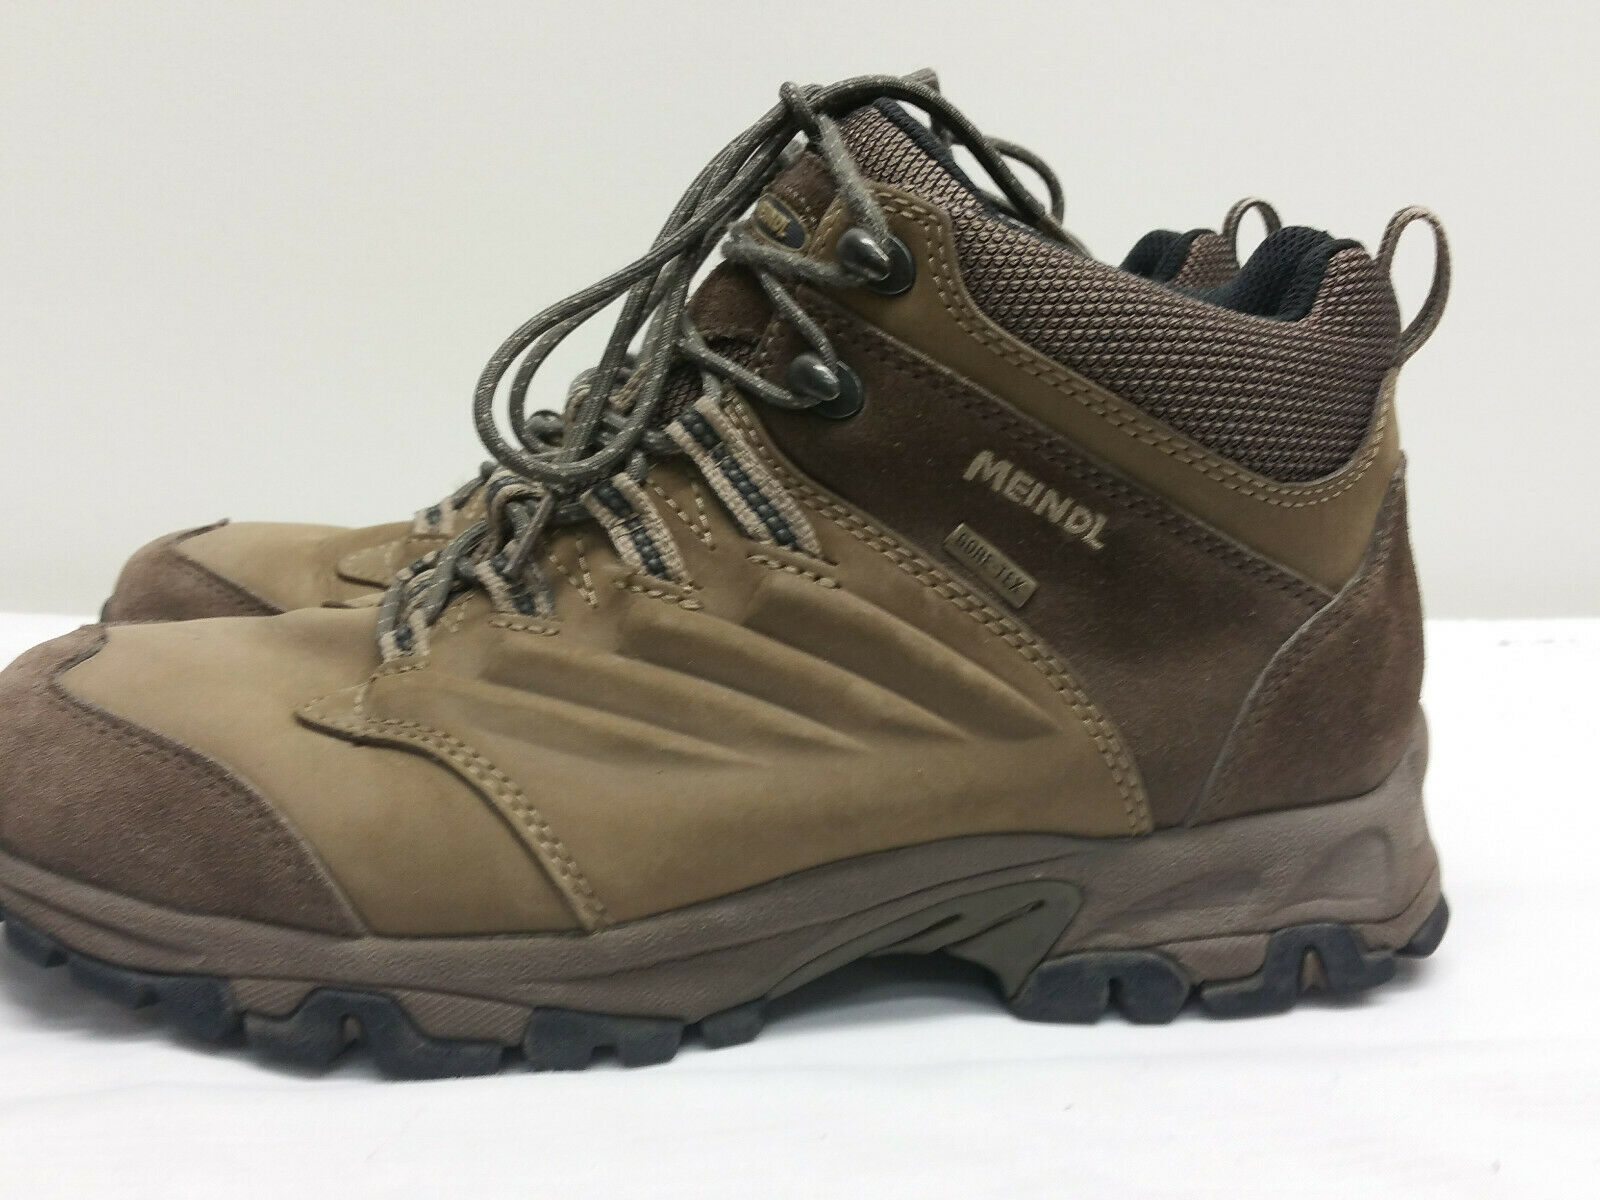 1682---MEINDL  AIR ACTIVE GORETEX UK 7,5  GR 41 STIEFEL LEDER BRAUN